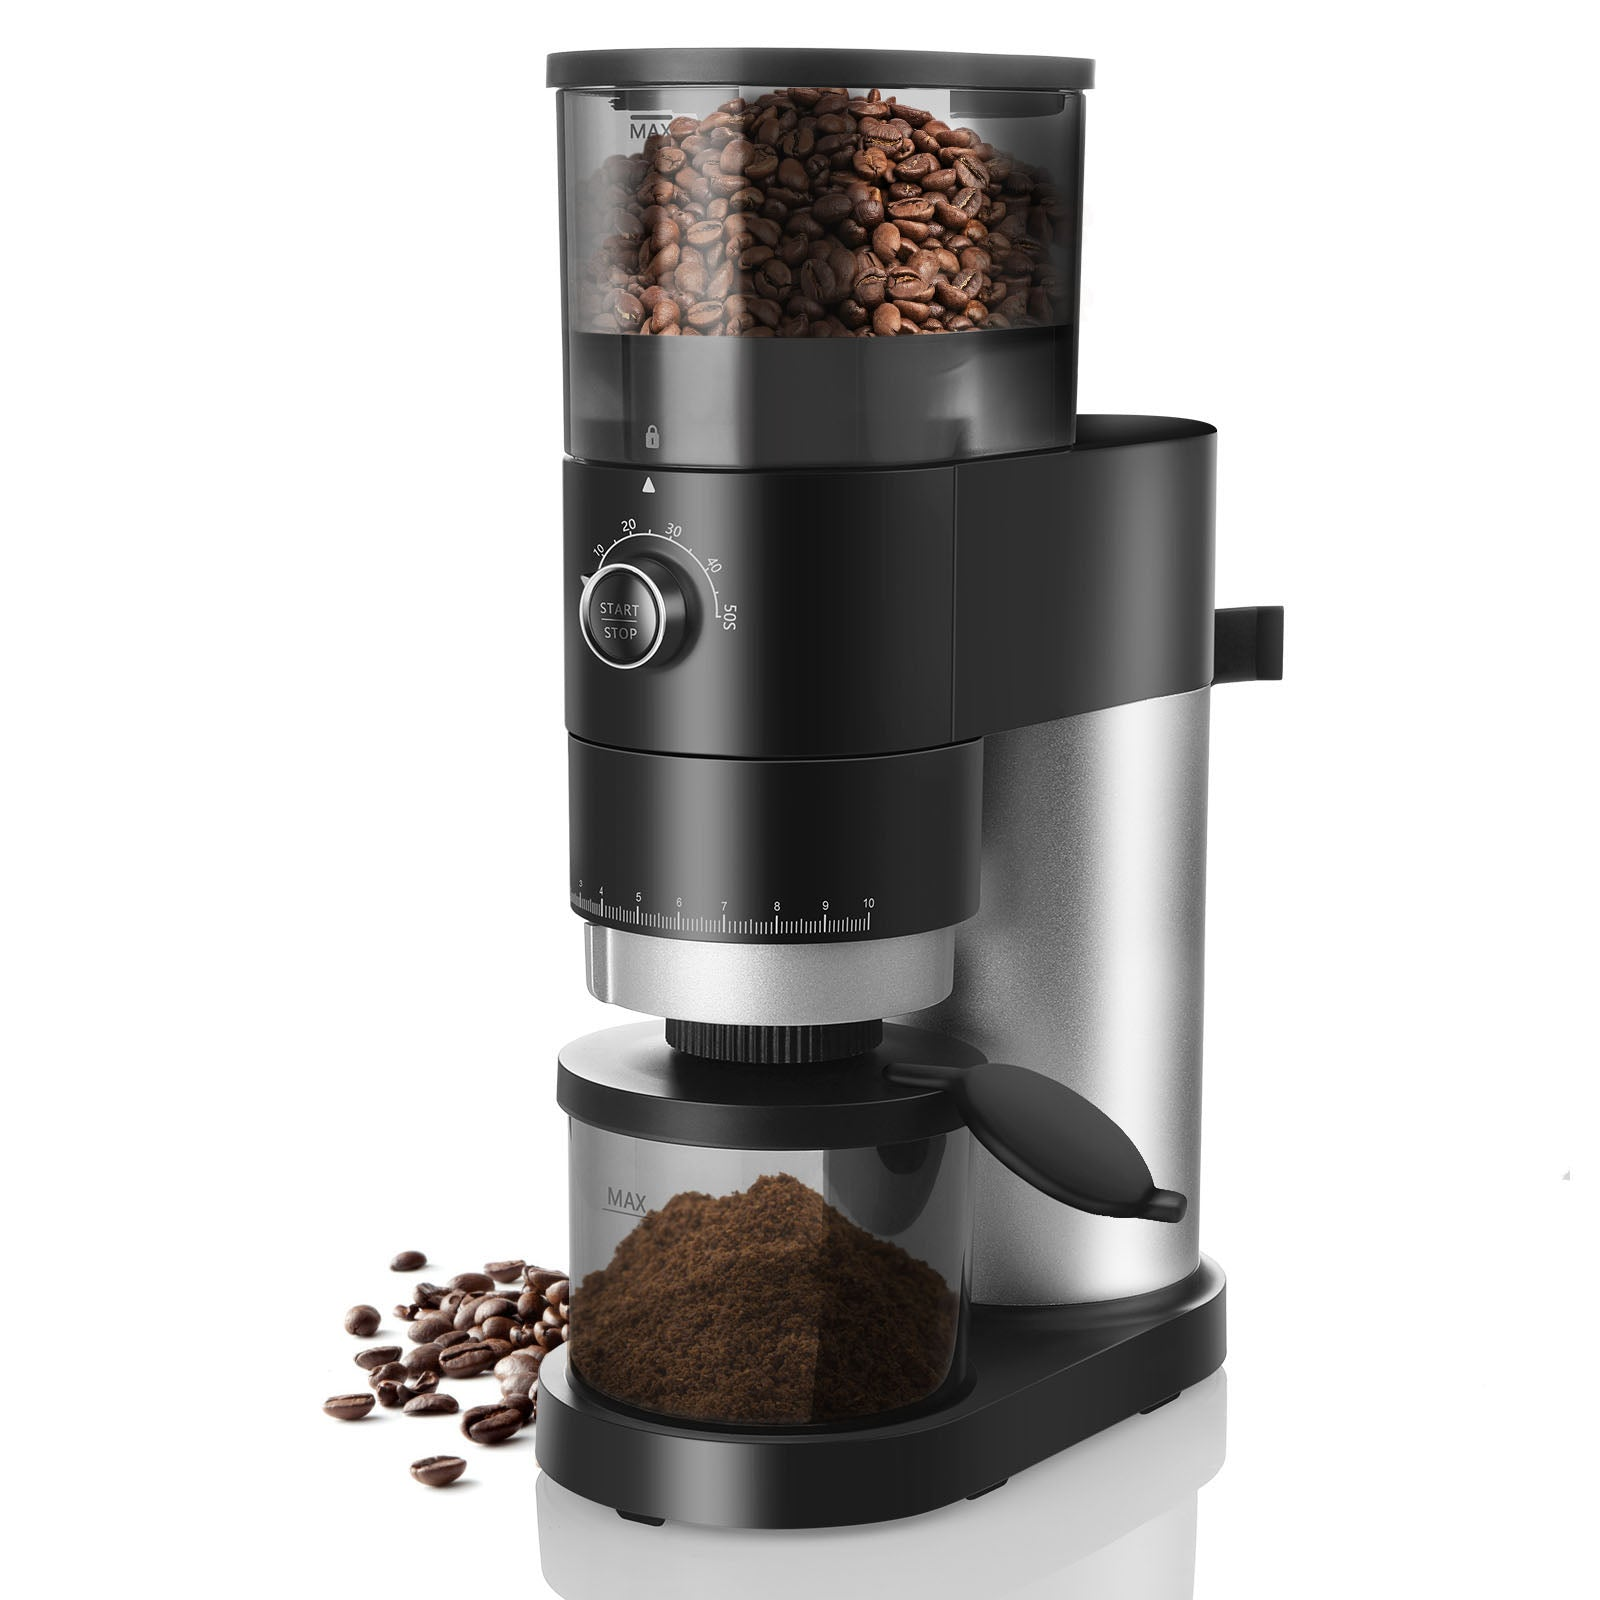 Bonsenkitchen CG8001 Conical Burr Coffee Grinder ,Automatic Electric Burr Mill Coffee Grinder